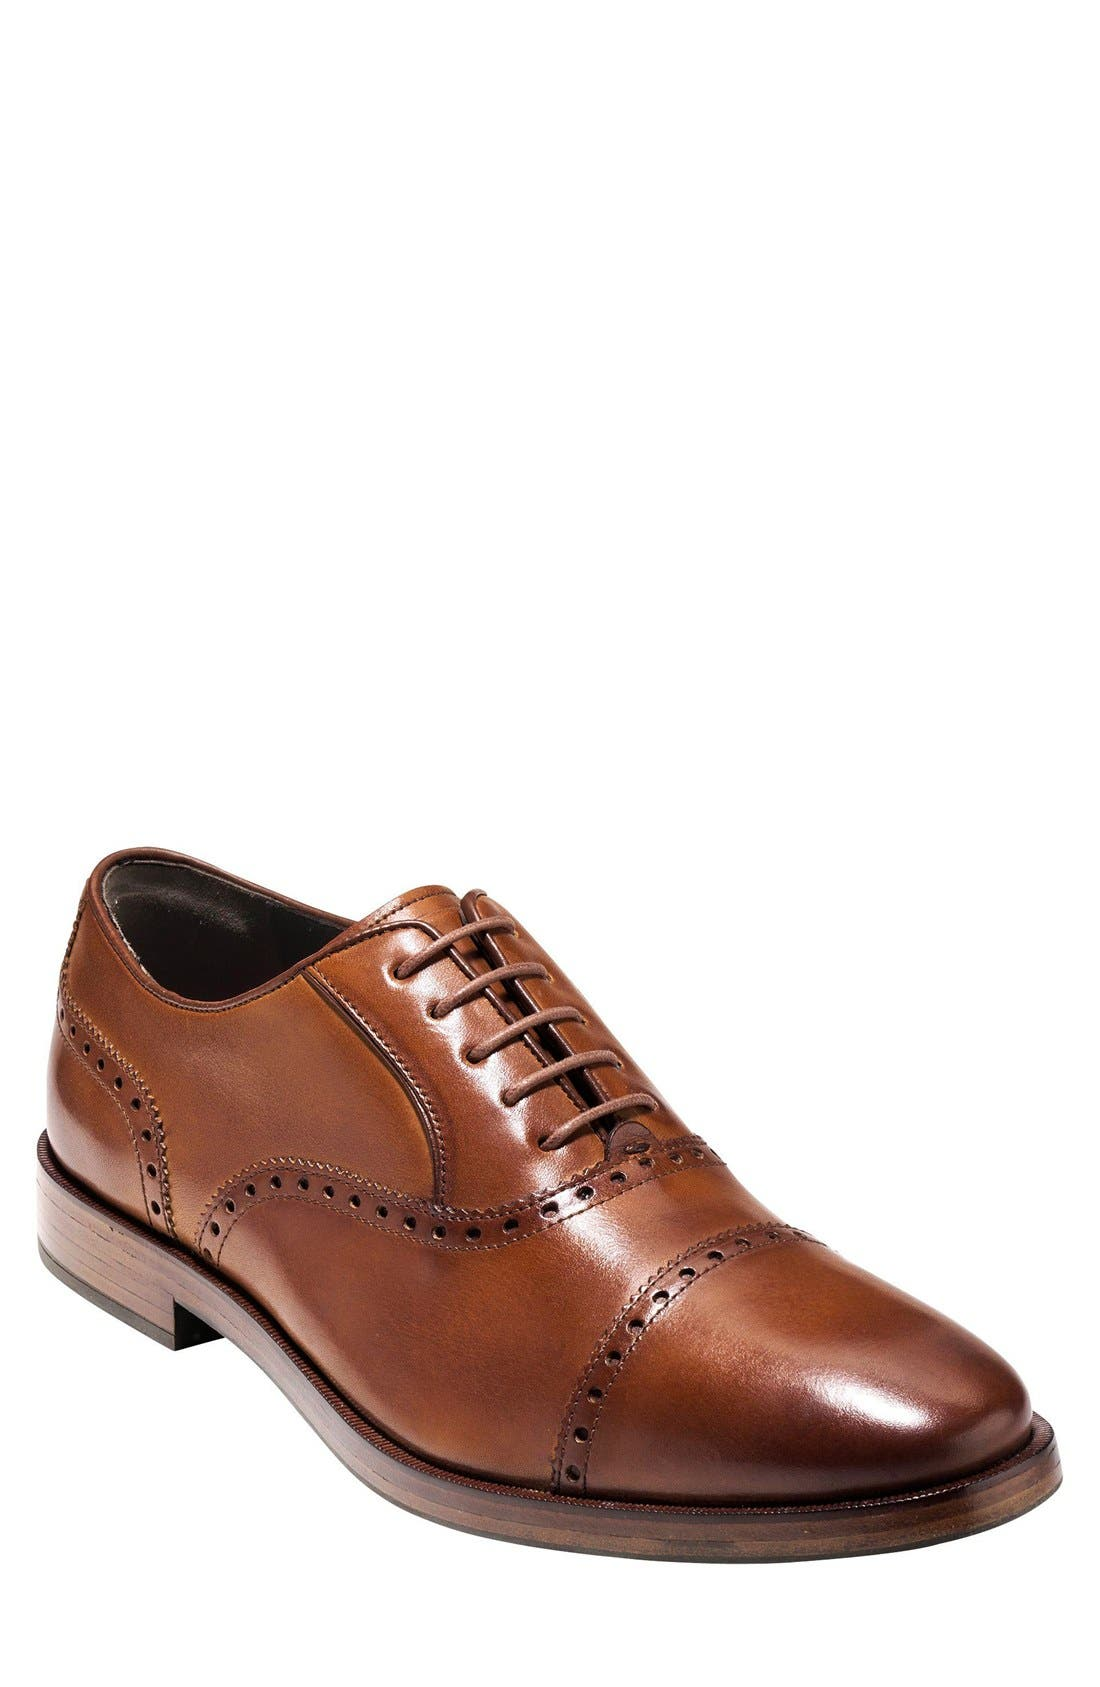 COLE HAAN 'Hamilton' Cap Toe Oxford, Main, color, BRITISH TAN LEATHER